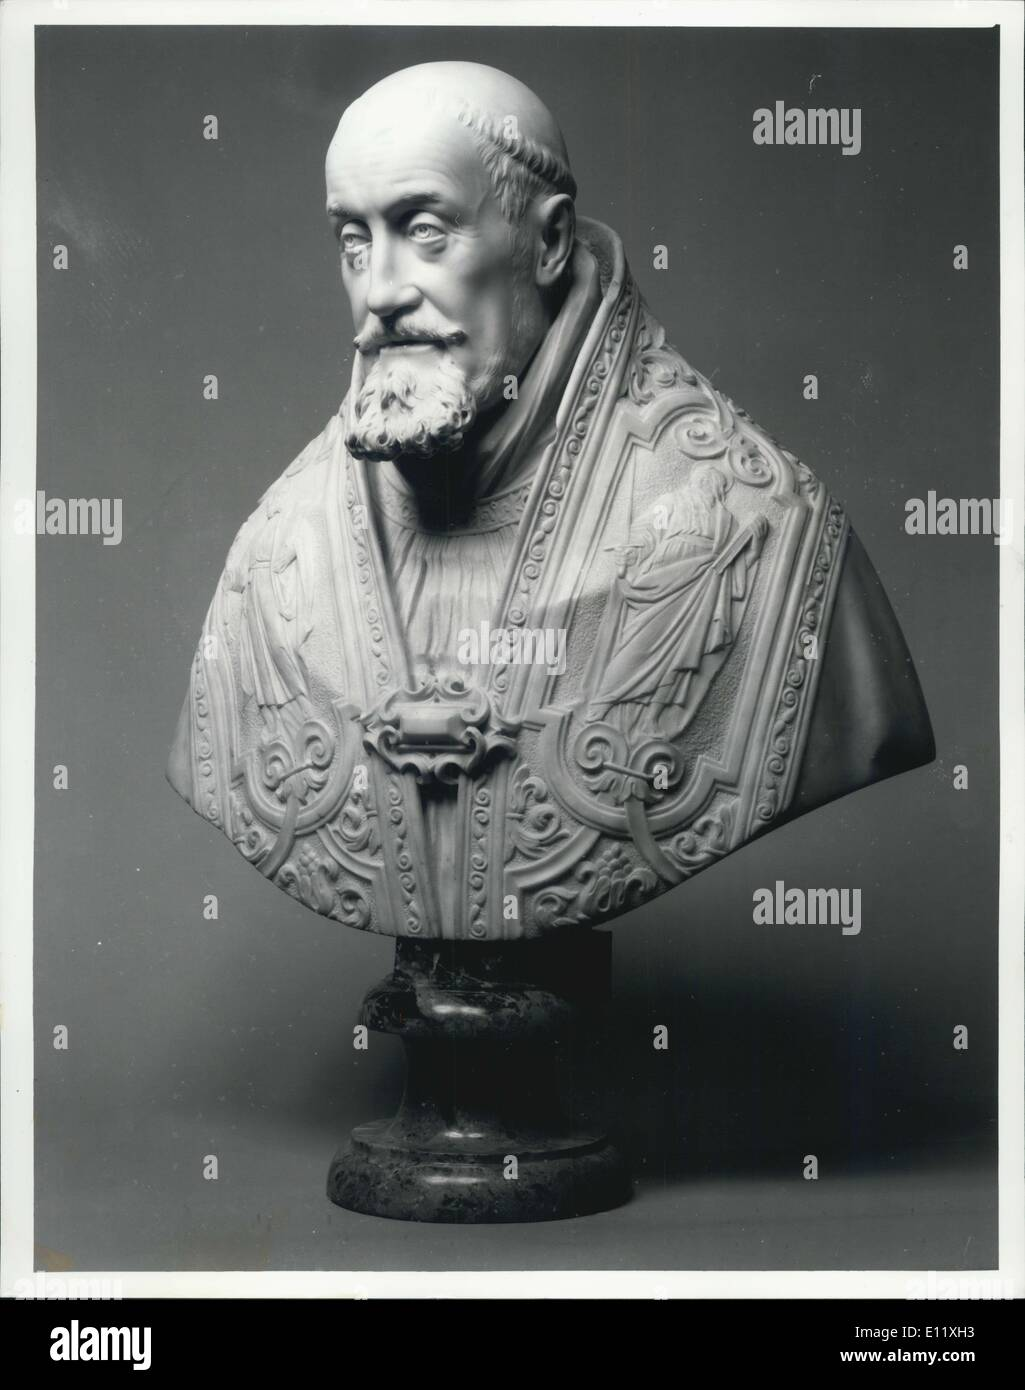 Oct. 21, 1980 - Recently Discovered Bernini Bust Of Pope For George XV To Be Sole At Sothbey's: The recently discovered marble bust of Pope Gregory XV which has been identified by the Victoria and Albert Museum as probably the last masterpiece by the Baroque sculpture Giovanni Lorenso Bernin, will come up for auction in December. Photo shows The Roman marble of Pope Gregory XV attributed to Bernini, Circa 1621. - Stock Image